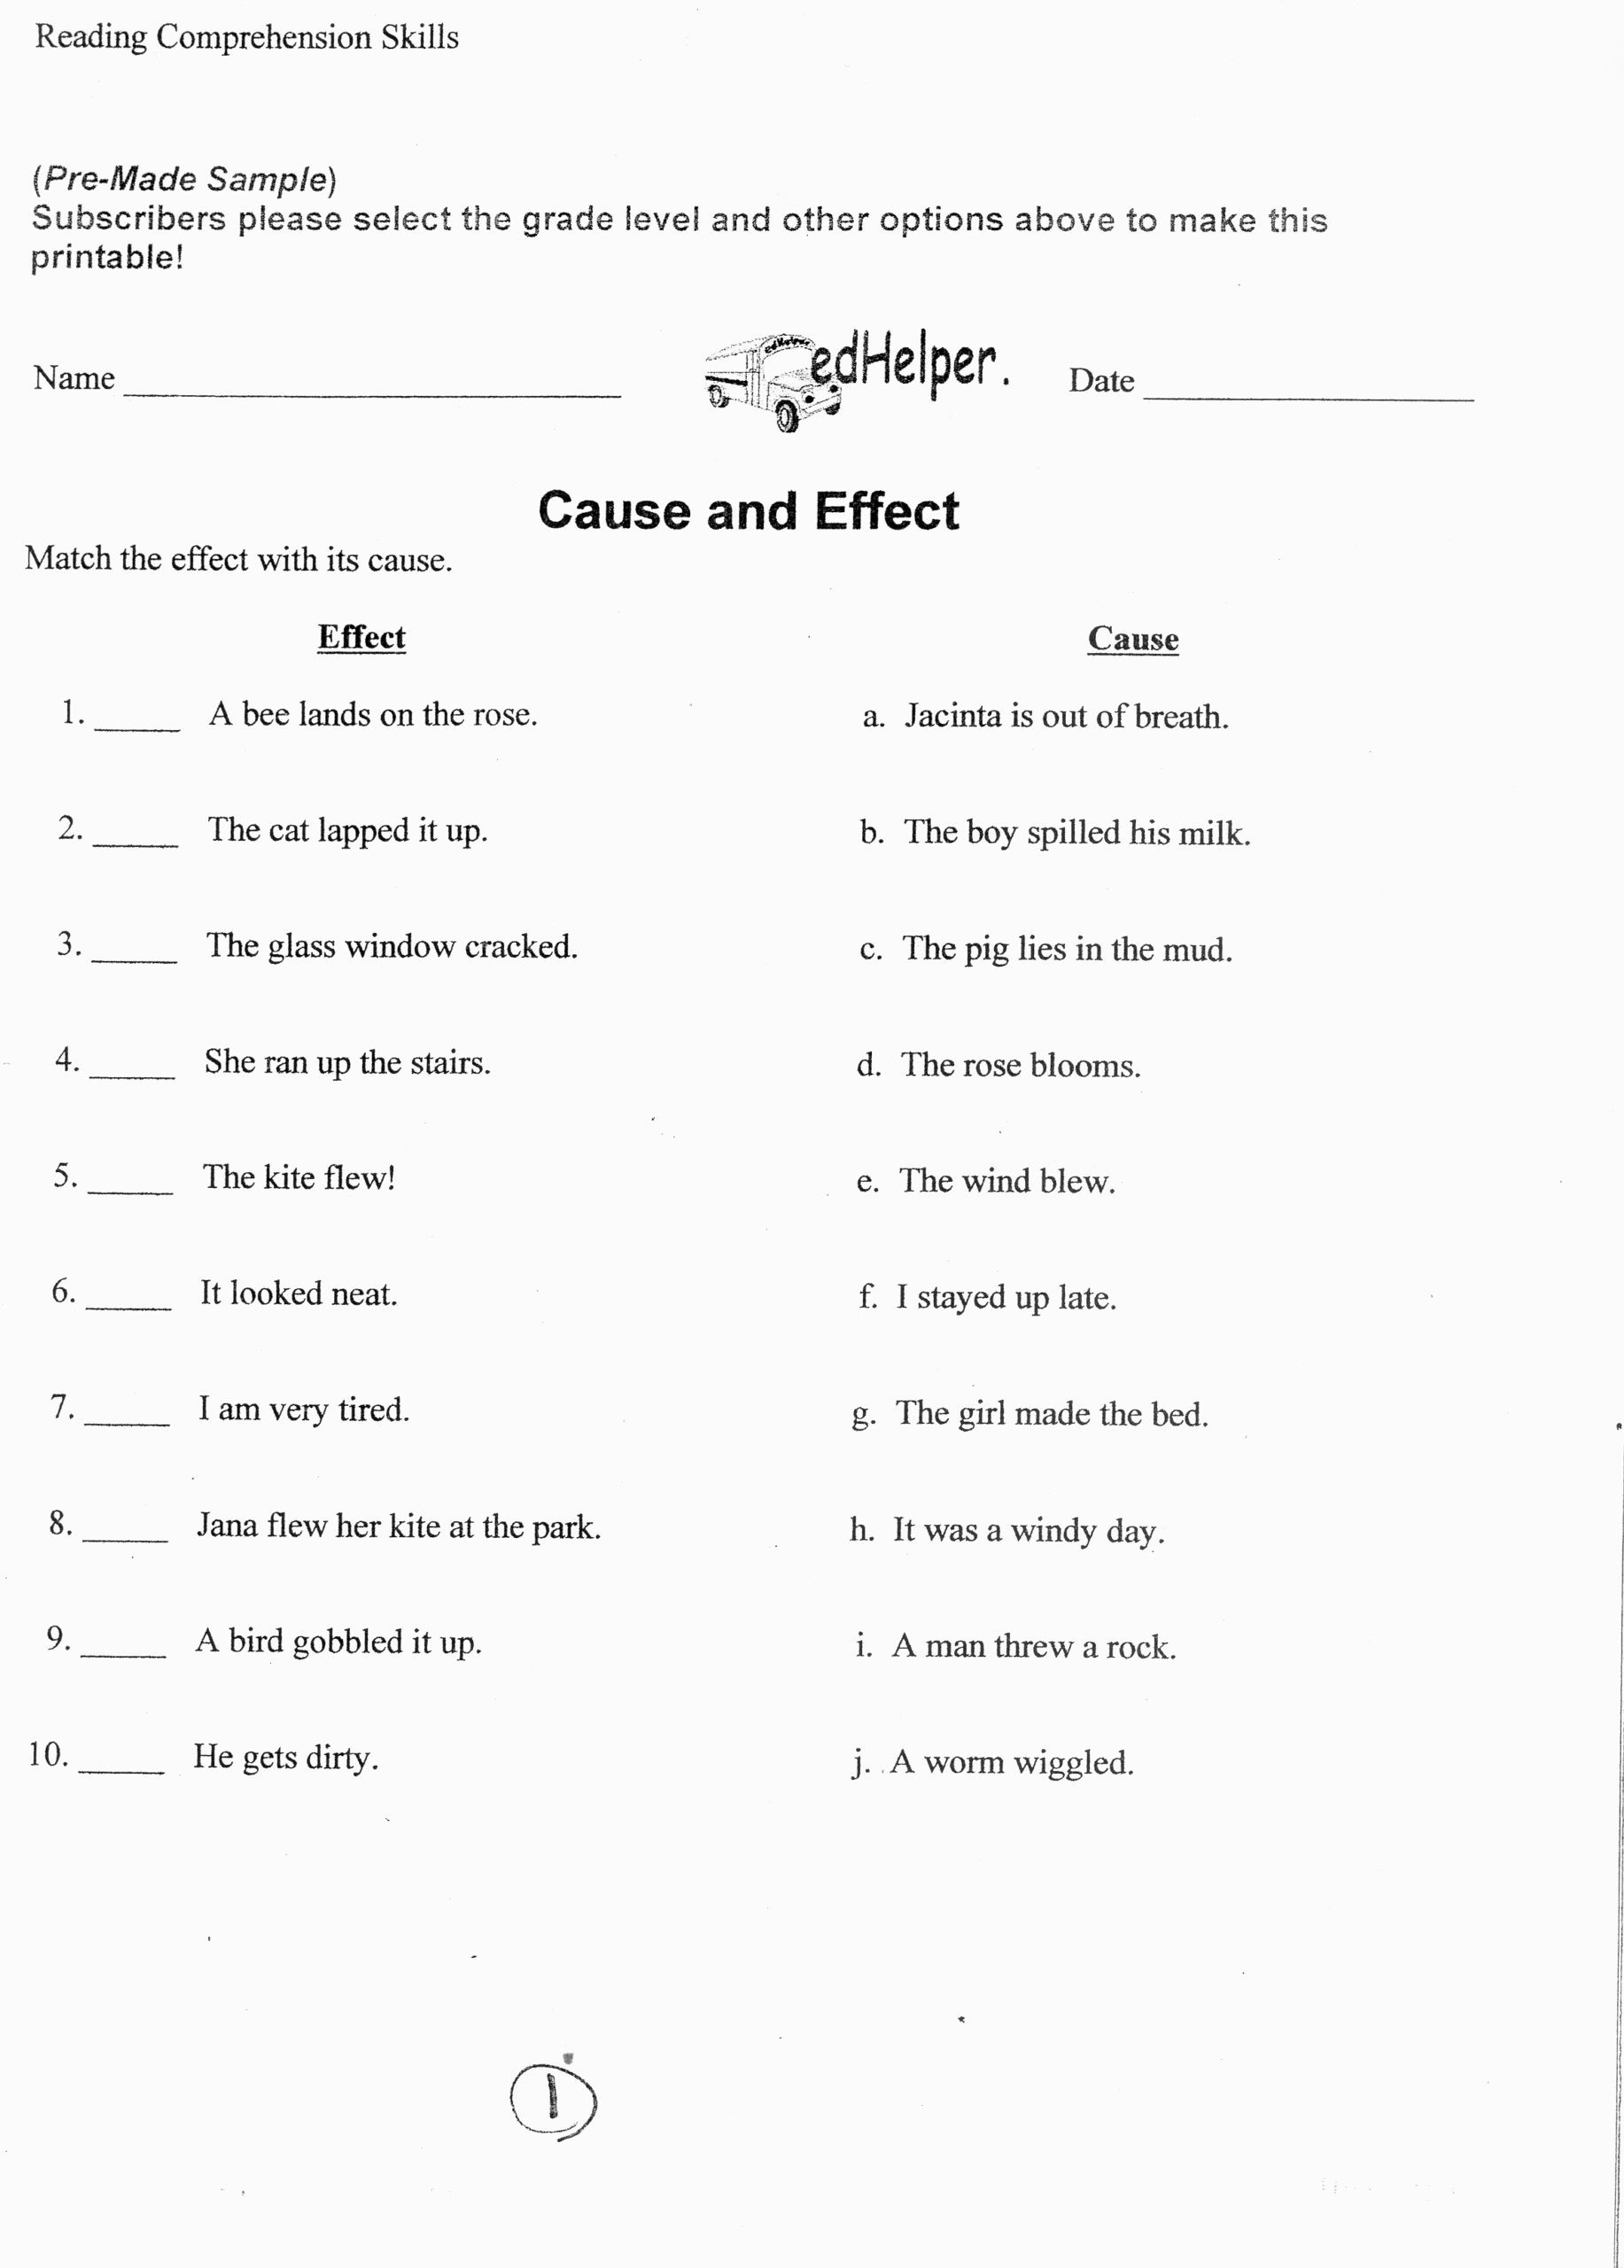 Pronoun Worksheets 6th Grade Base 10 Blocks Math Vertical Addition Worksheets Ks2 Pronoun